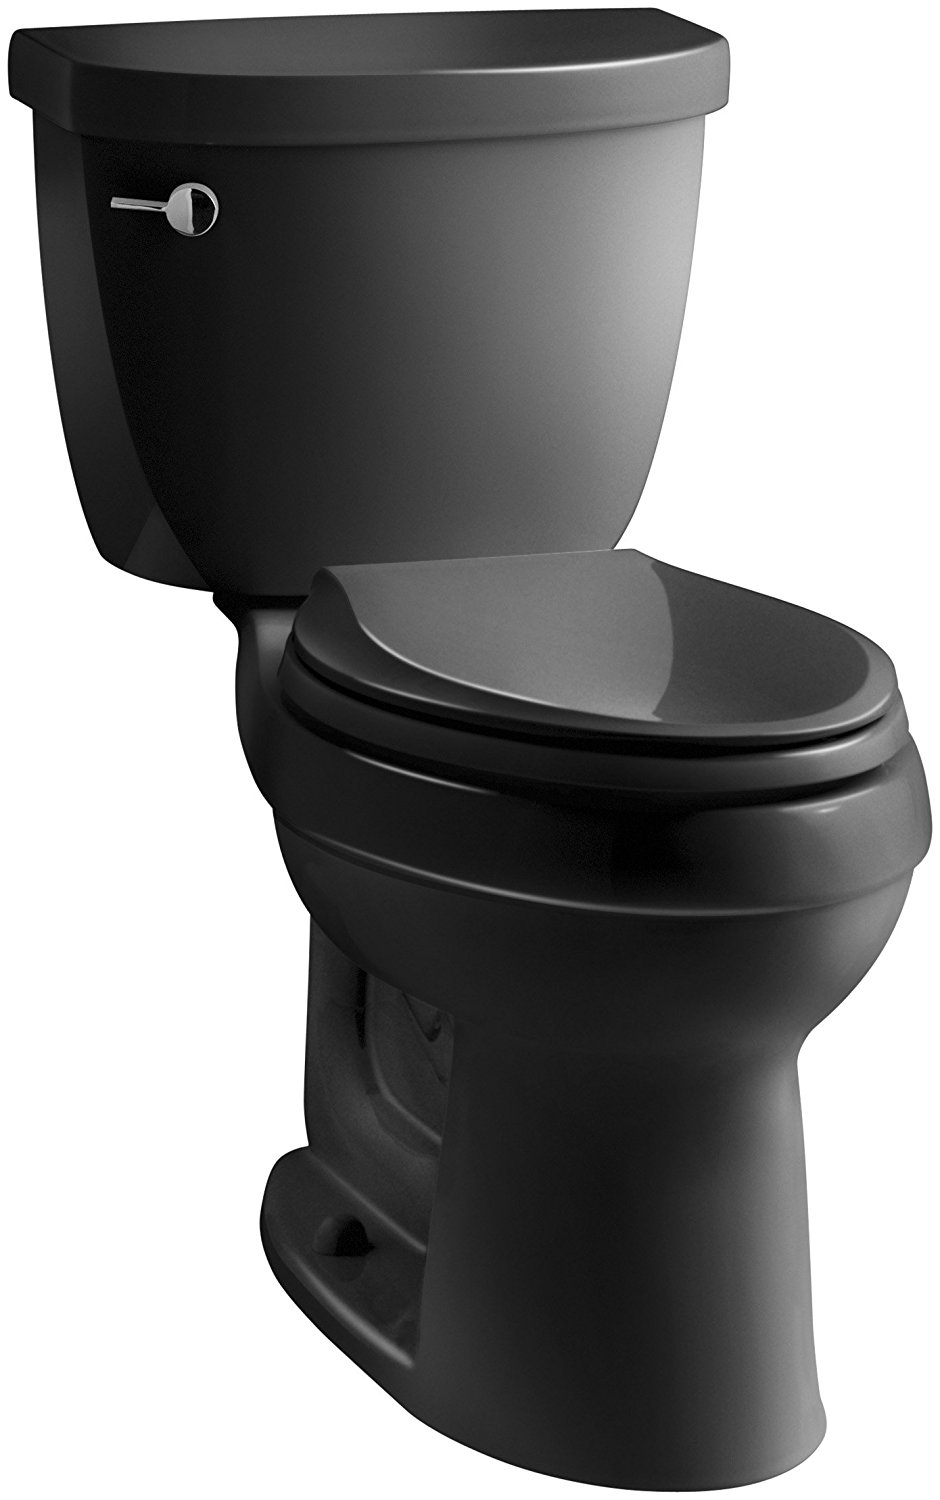 KOHLER K-3609-7 Cimarron Comfort Height Elongated 1.28 gpf Toilet with AquaPiston Technology, Less Seat, Black Black